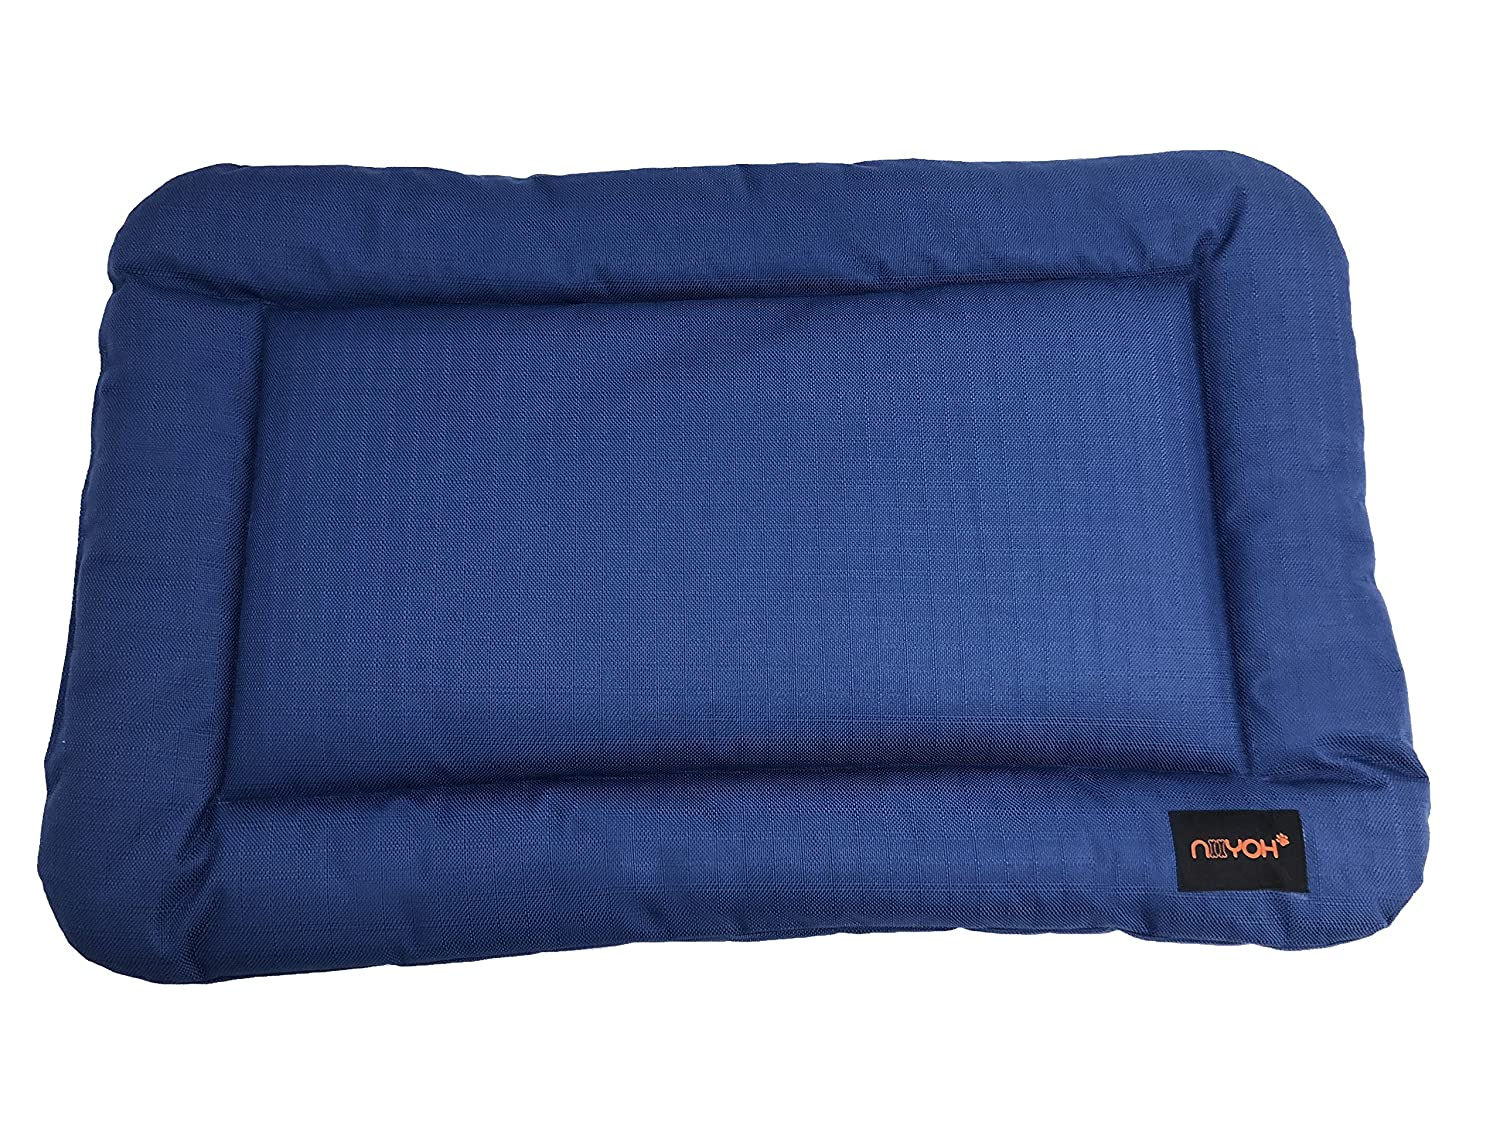 bluee Small 35\ bluee Small 35\ Niiyoh Mighty Dog Bed with Super Durable 1800D Ripstop Fabric (Great for Outdoors )